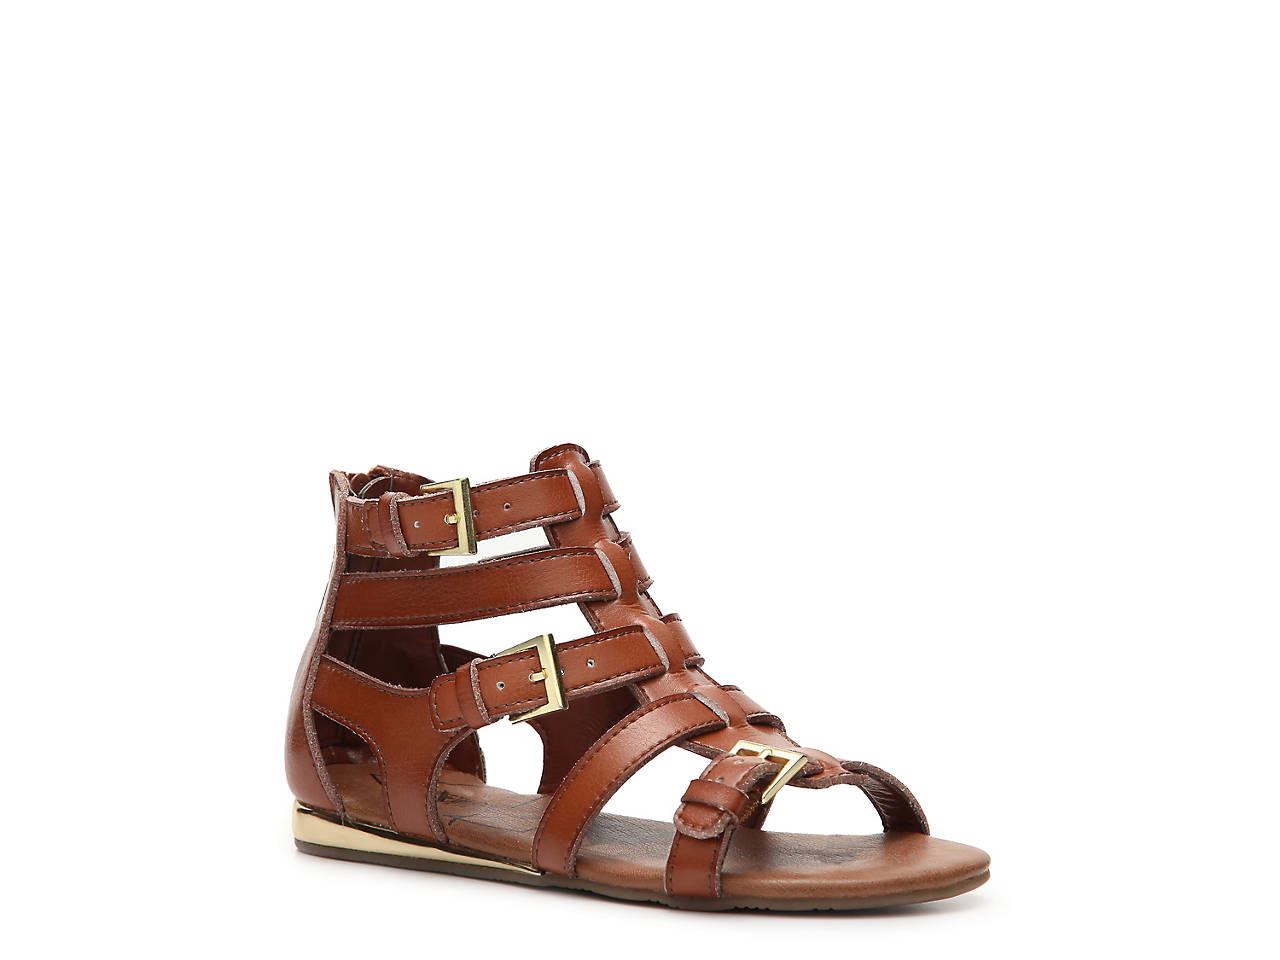 9c3147efb92 Kenneth Cole Reaction Kiss N Shell Youth Gladiator Sandal Kids Shoes ...